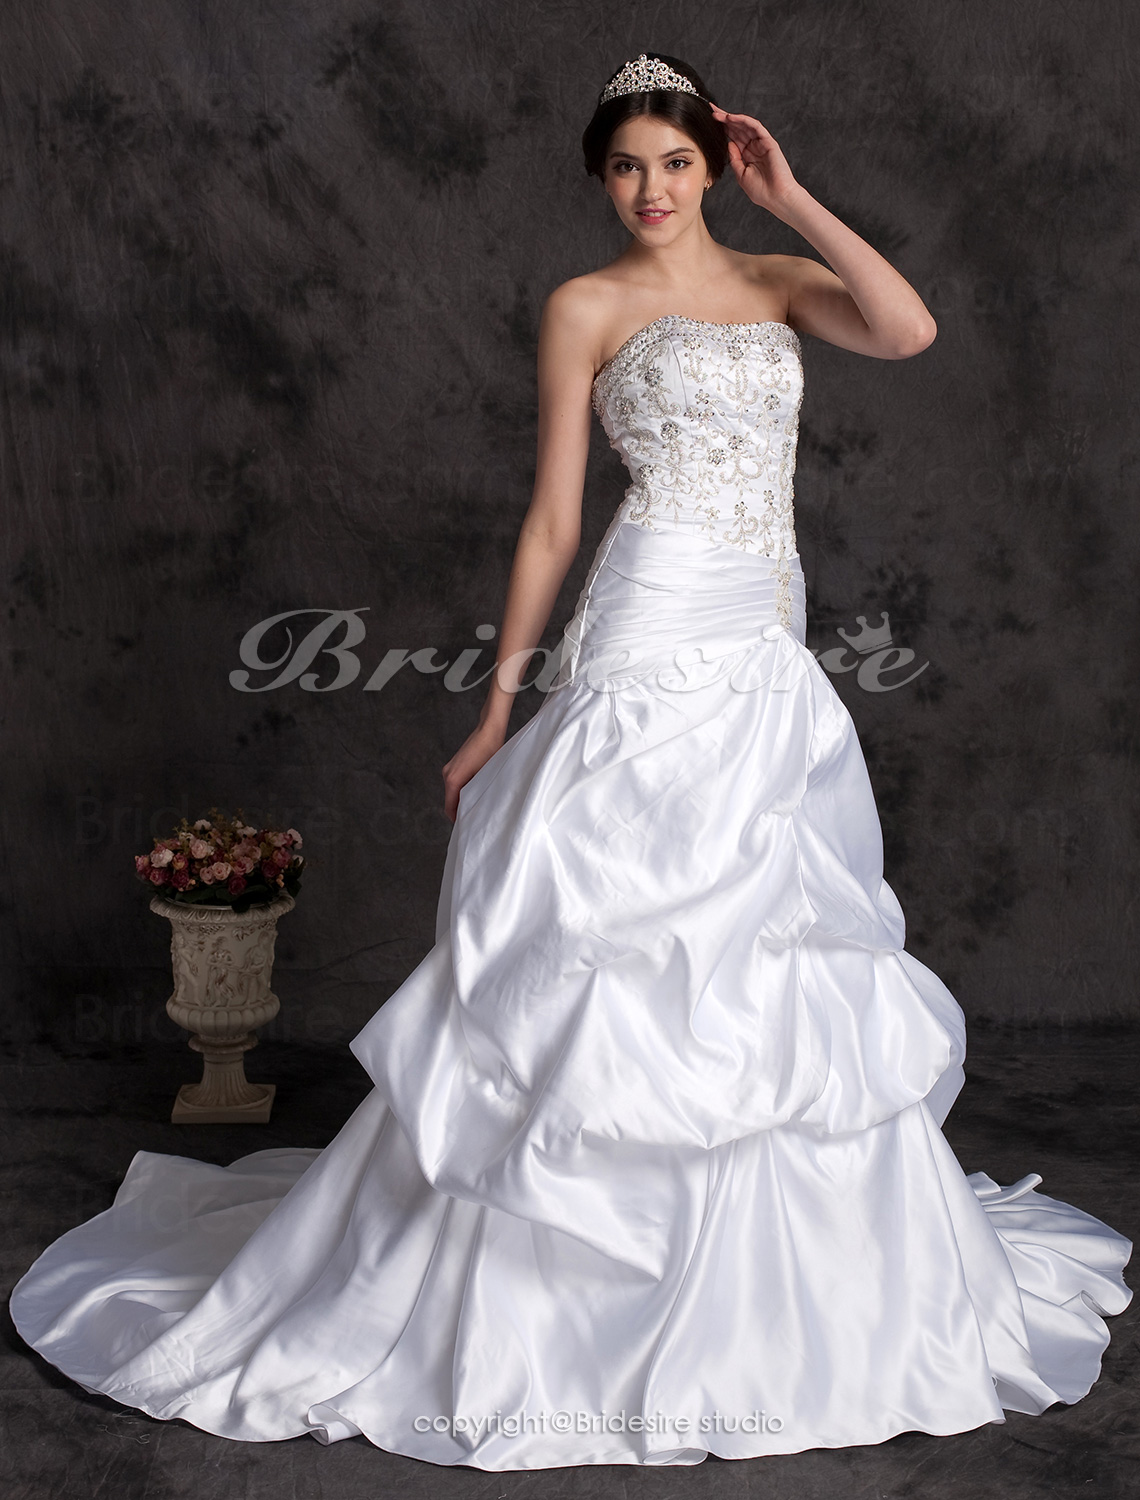 A-line Cathedral Train Embroidery Satin Strapless Wedding Dress